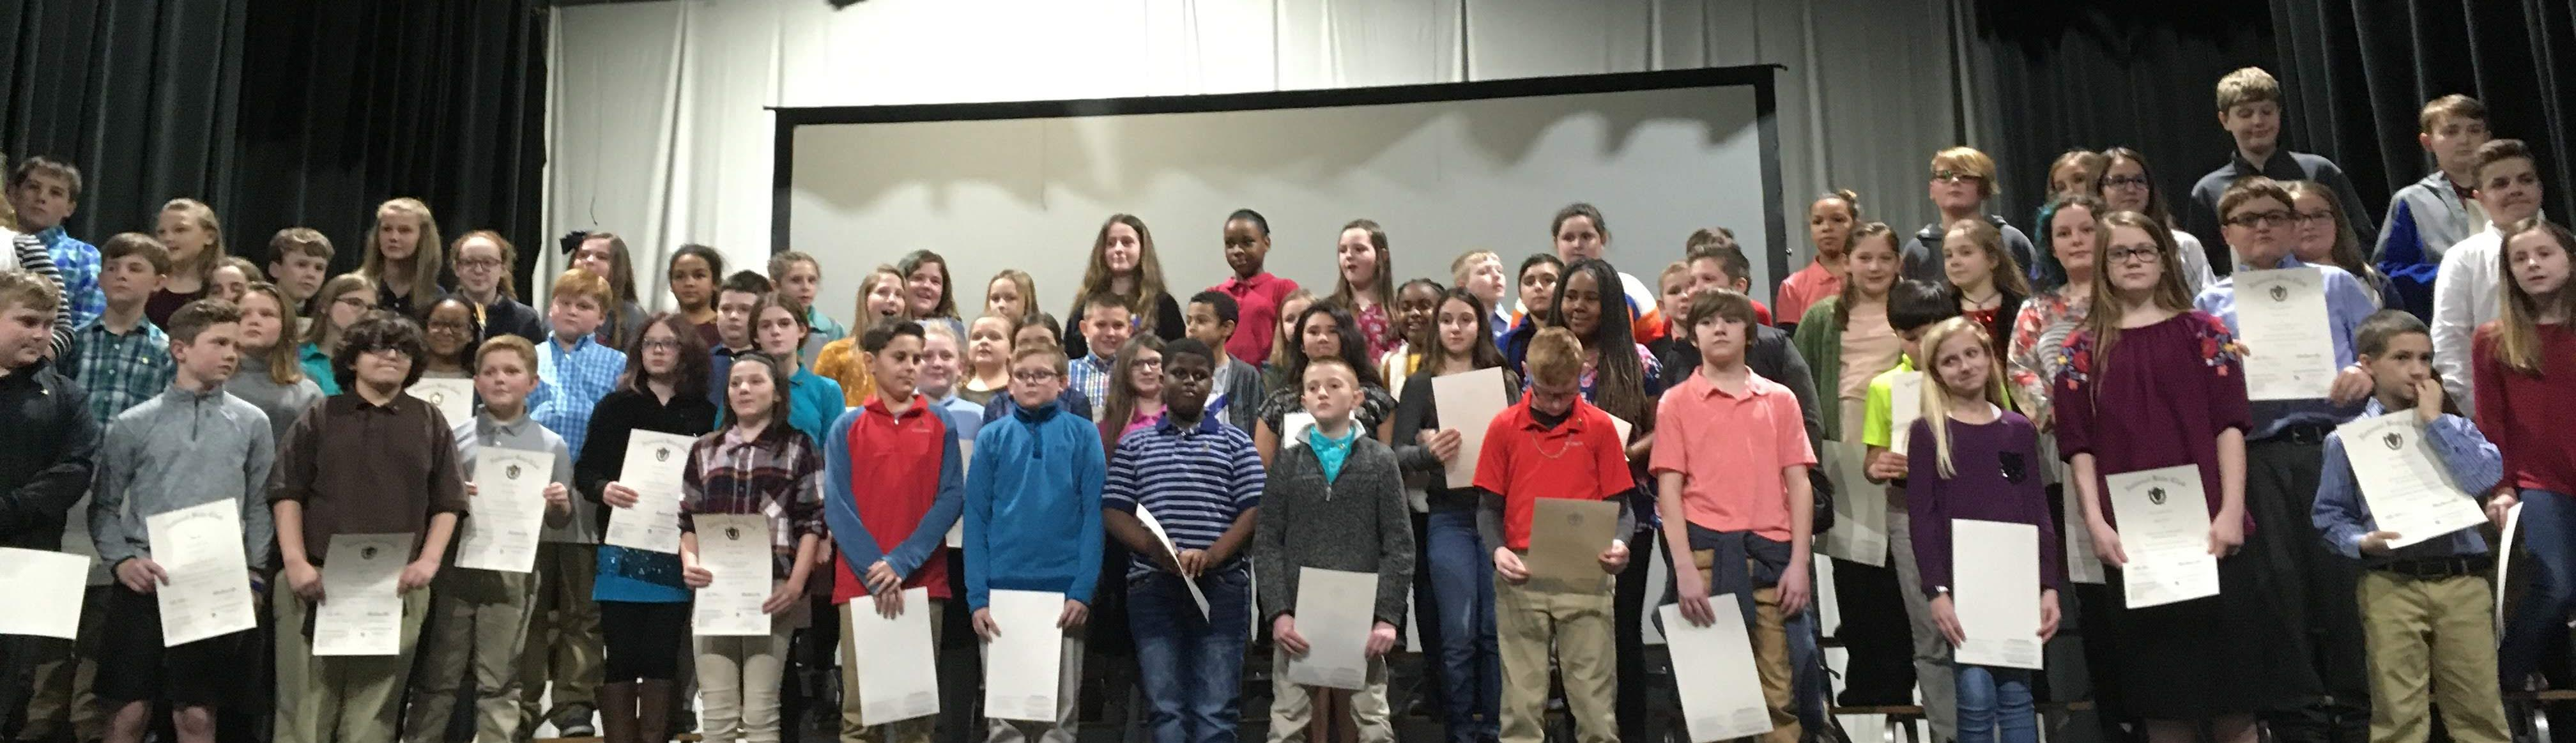 Students stand with Jr. Beta Certificates